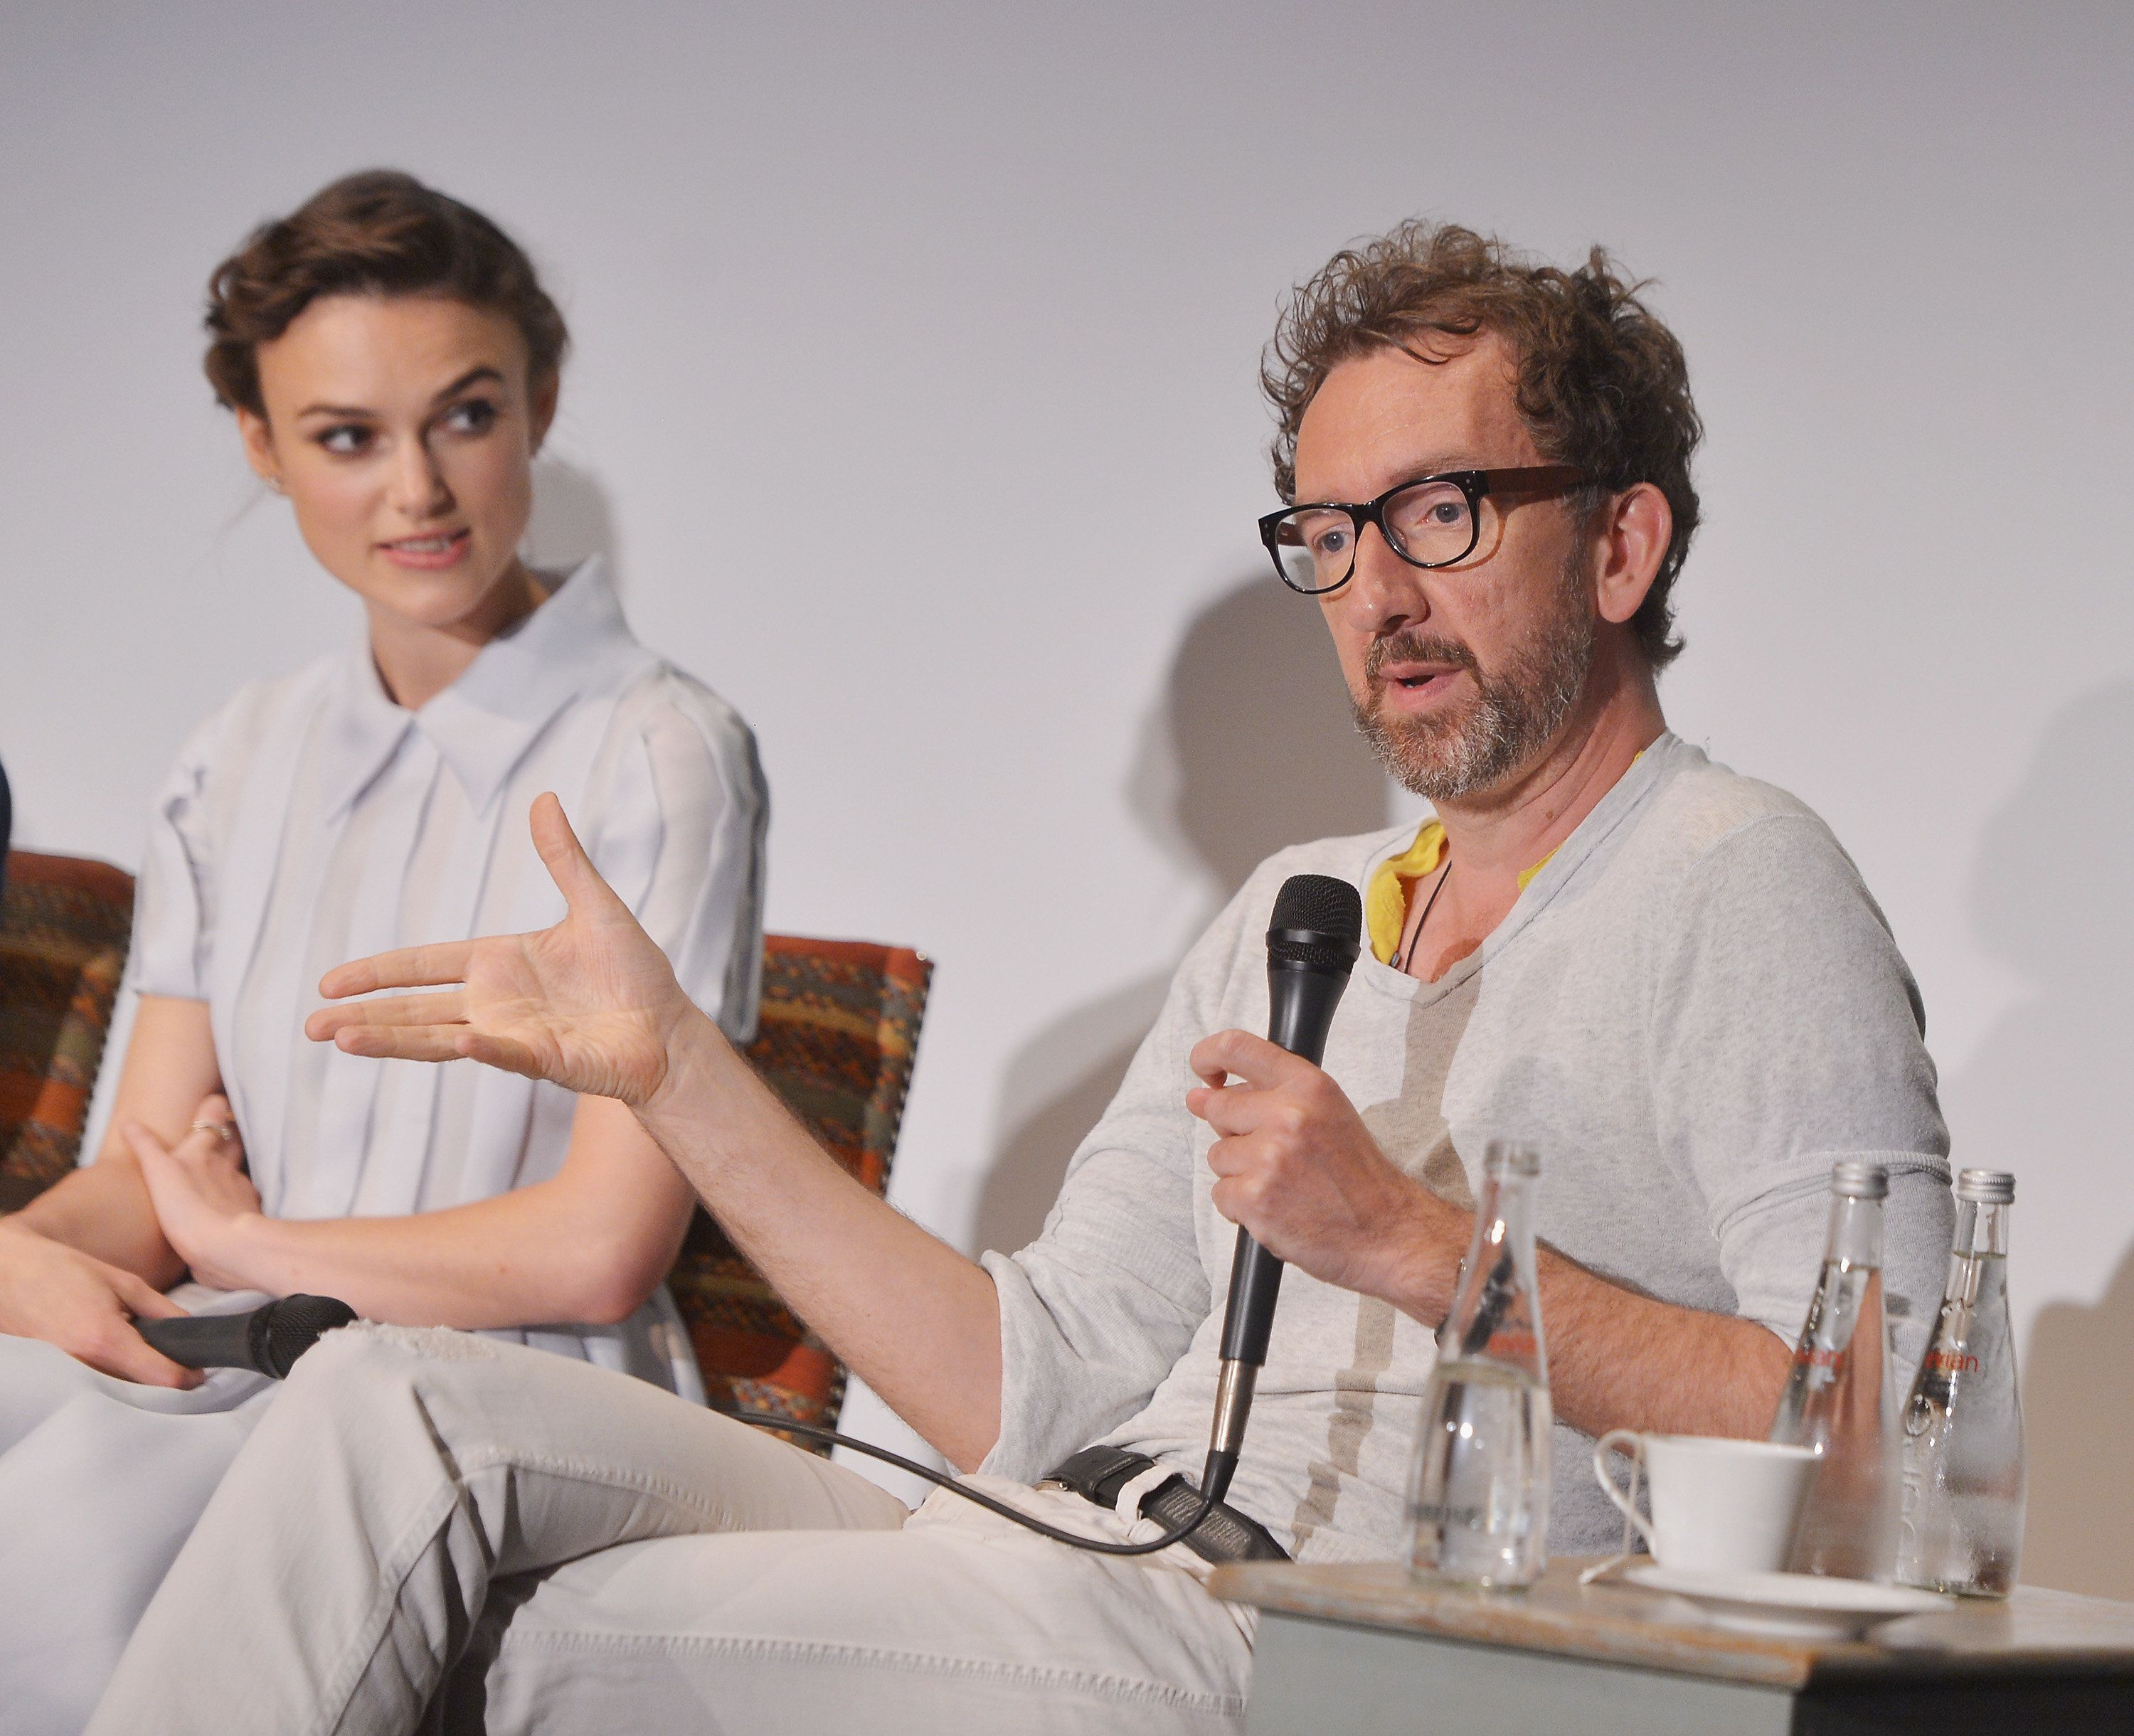 NEW YORK, NY - JUNE 24:  Actress Keira Knightley and writer/director John Carney attend the 'Begin Again' press conference at Crosby Street Hotel on June 26, 2014 in New York City.  (Photo by Stephen Lovekin/Getty Images for HBO)